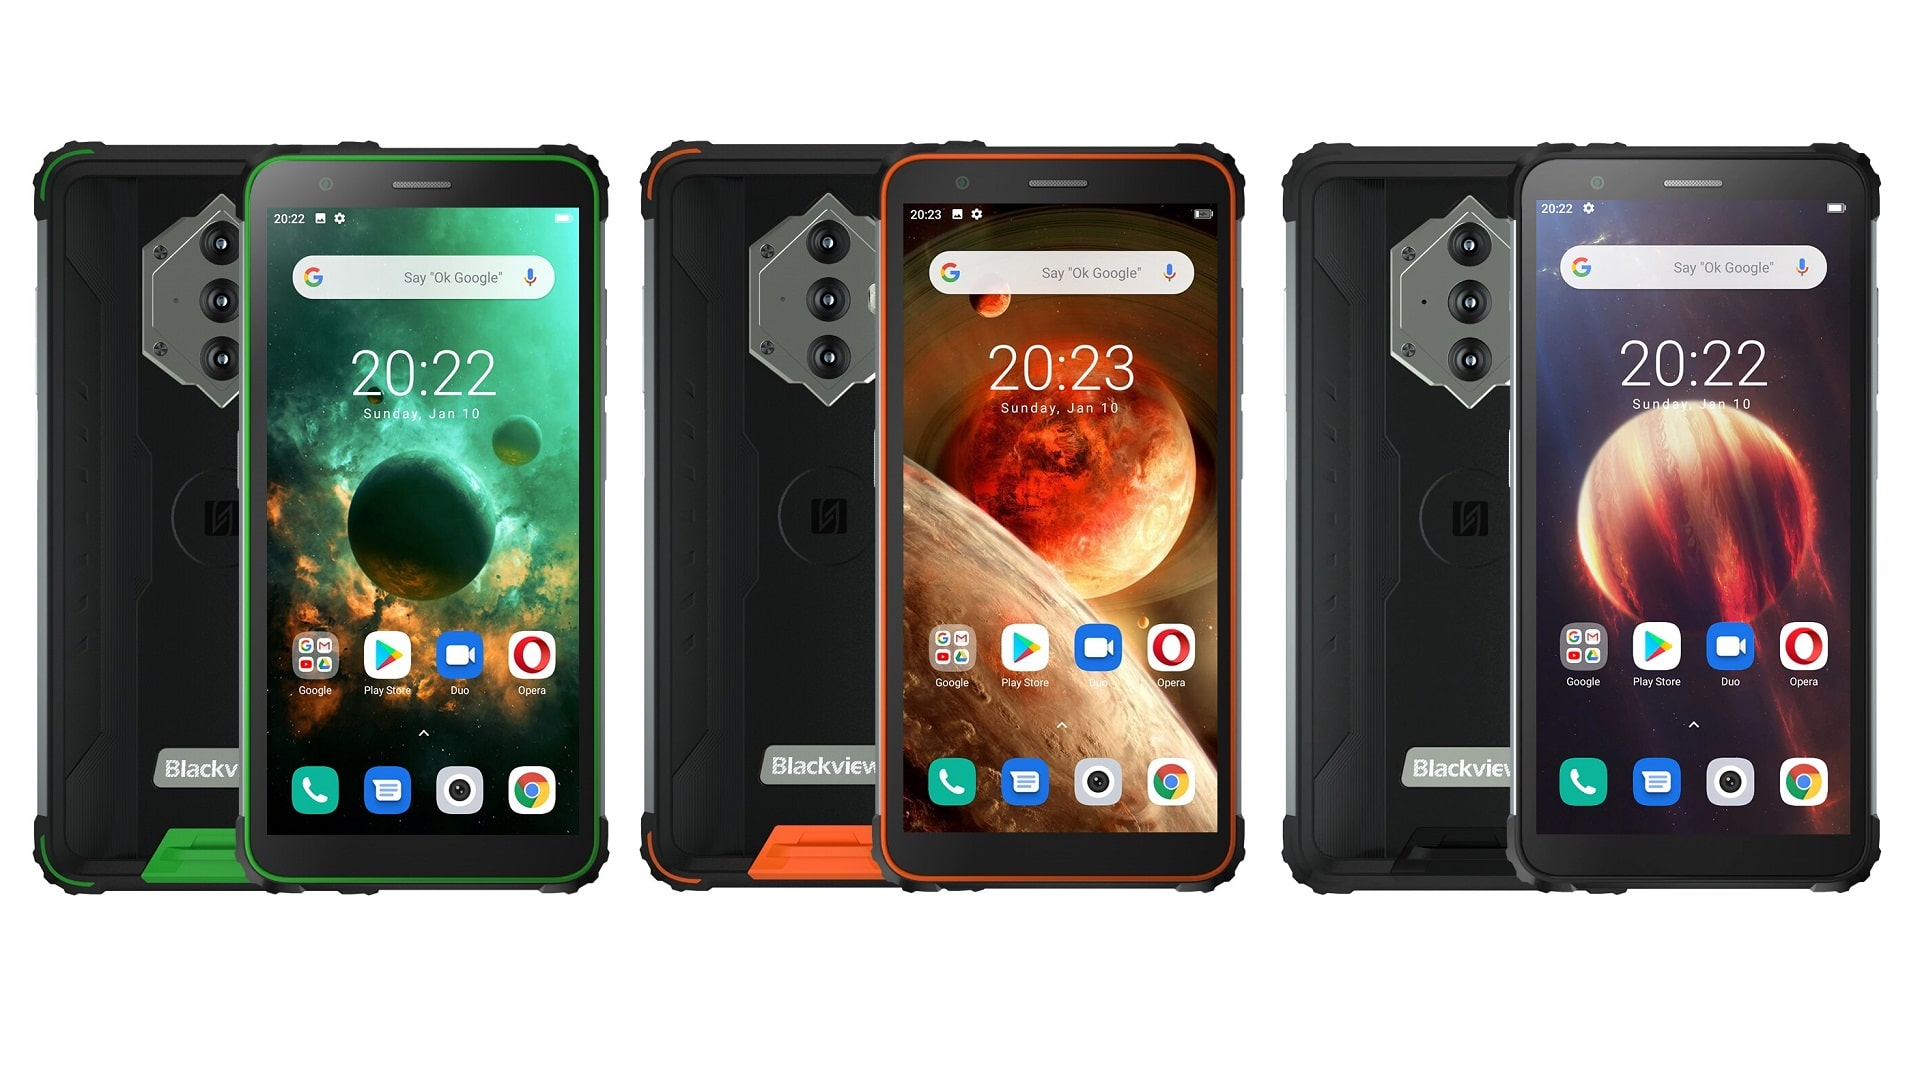 1613520611 429 John BlackView BV6600 hard phone with 8580 mAh battery was John BlackView BV6600 hard phone with 8580 mAh battery was introduced 2